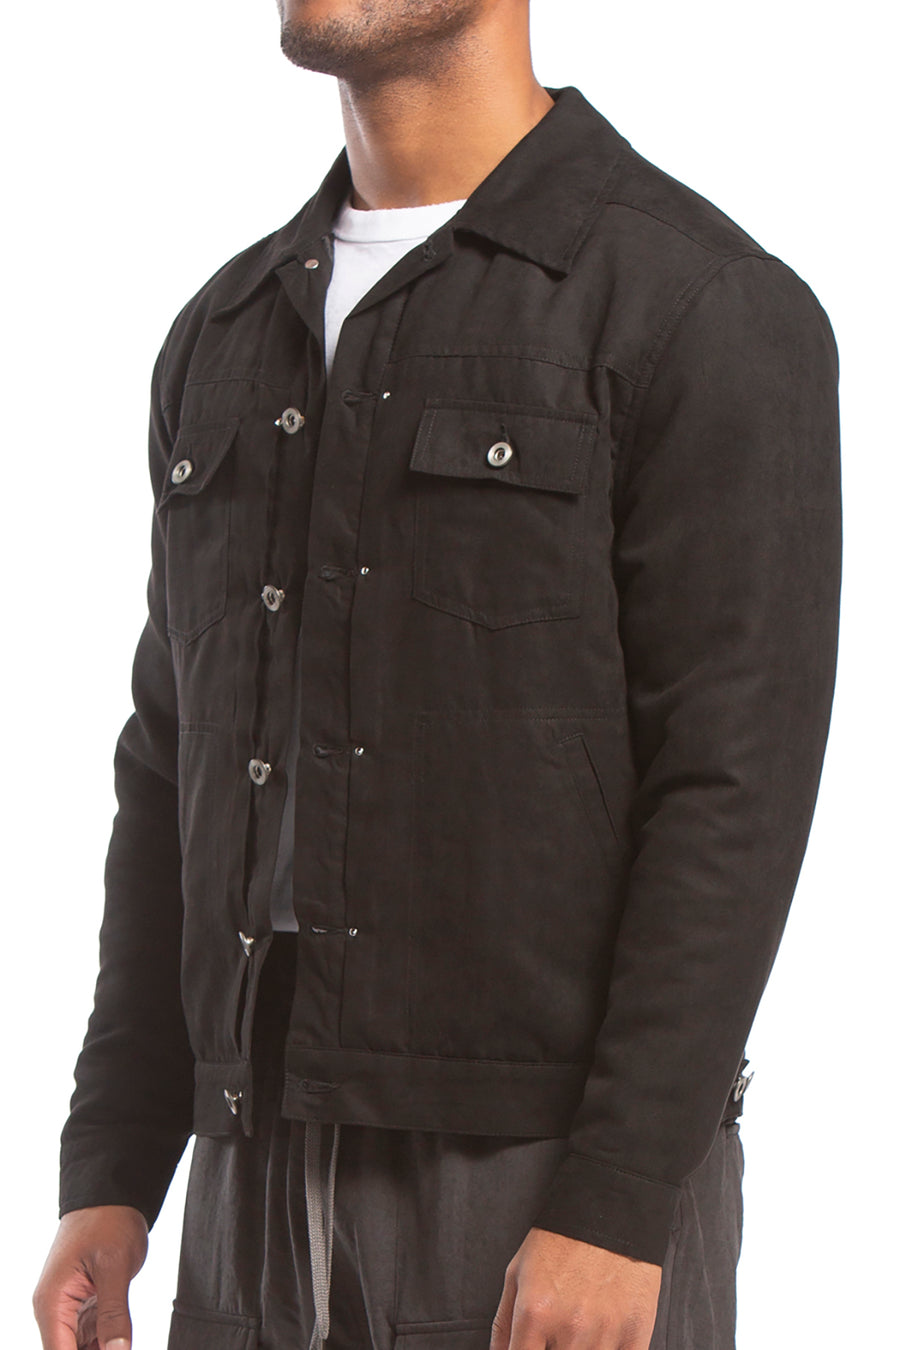 Maine Work Jacket, Black